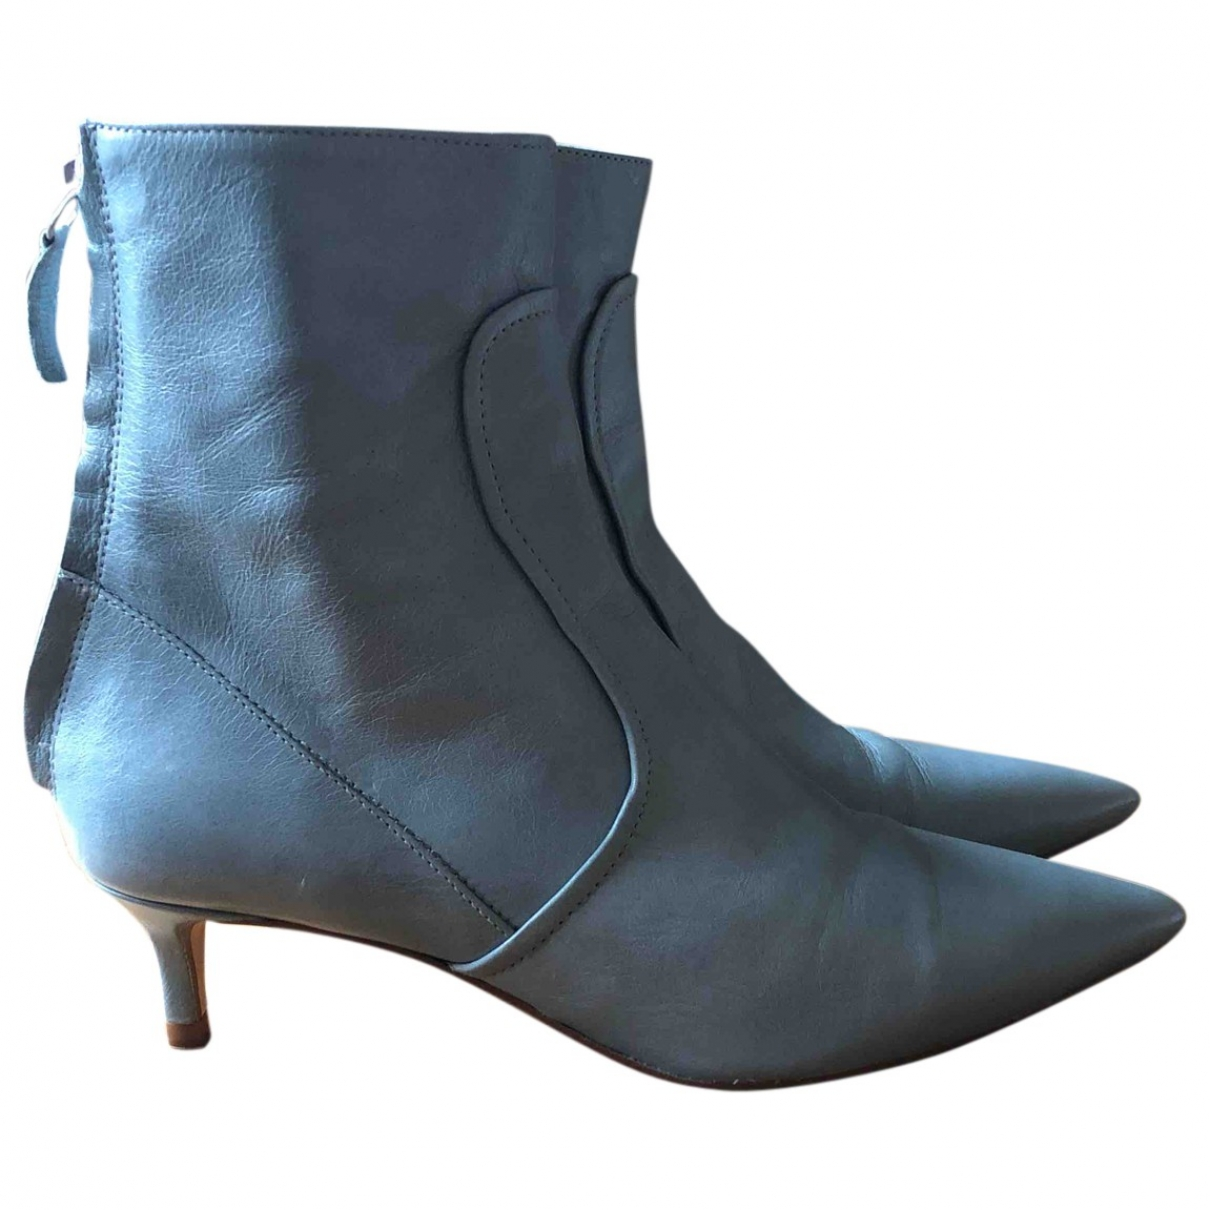 Zara \N Blue Leather Ankle boots for Women 35 EU